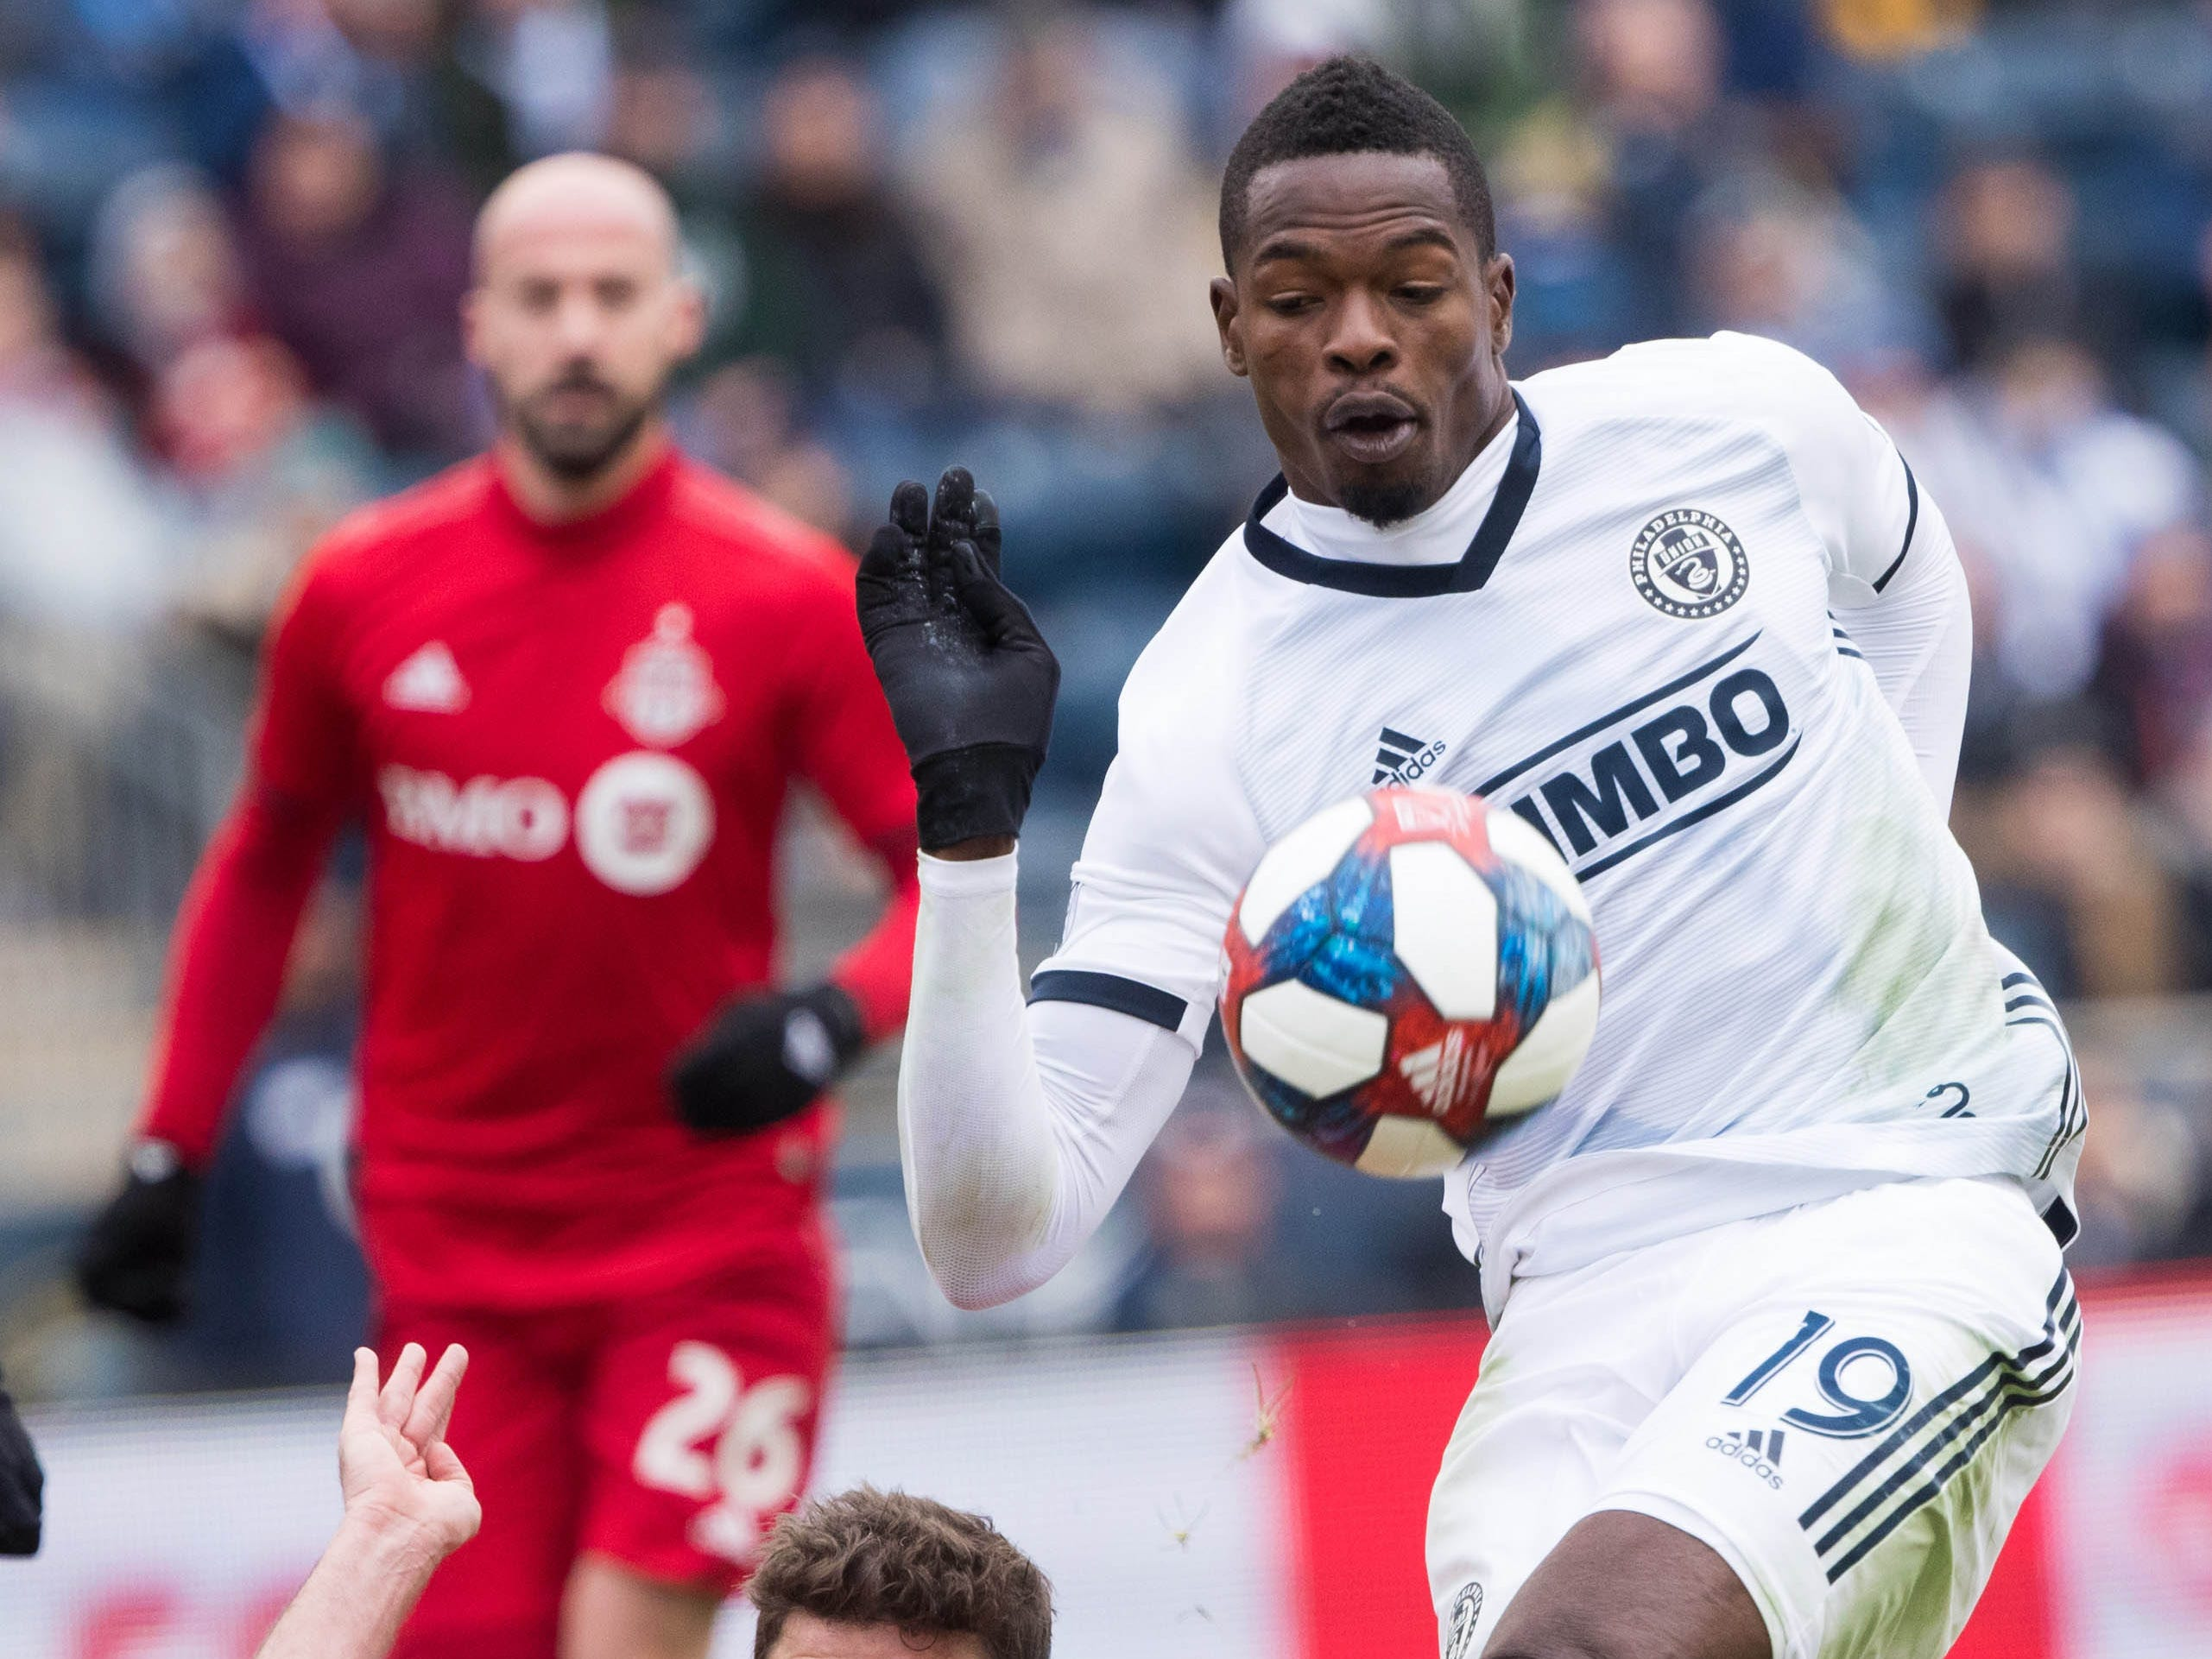 Philadelphia Union forward Cory Burke (19) kicks the ball past Toronto FC defender Drew Moor during the first half at Talen Energy Stadium. Toronto FC won the game, 3-1.